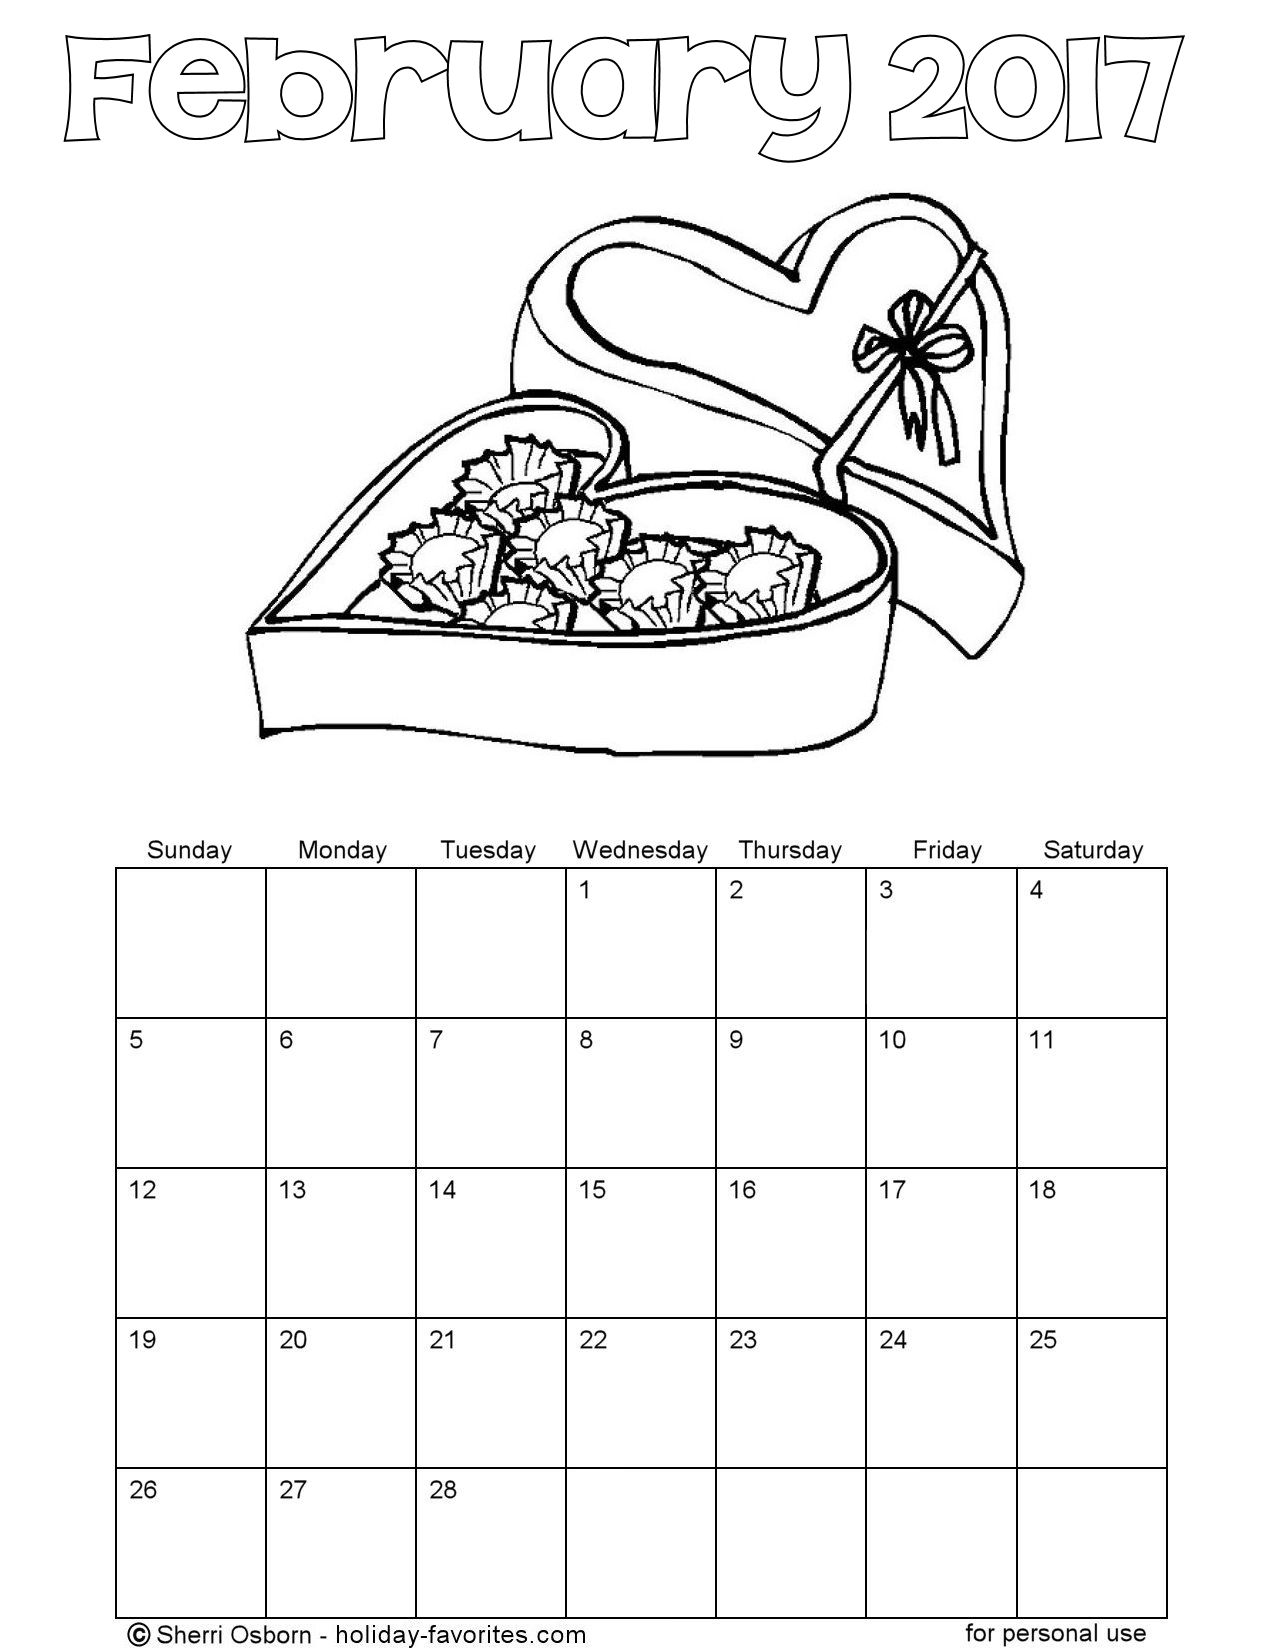 Printable February 2017 Calendars | Holiday Favorites